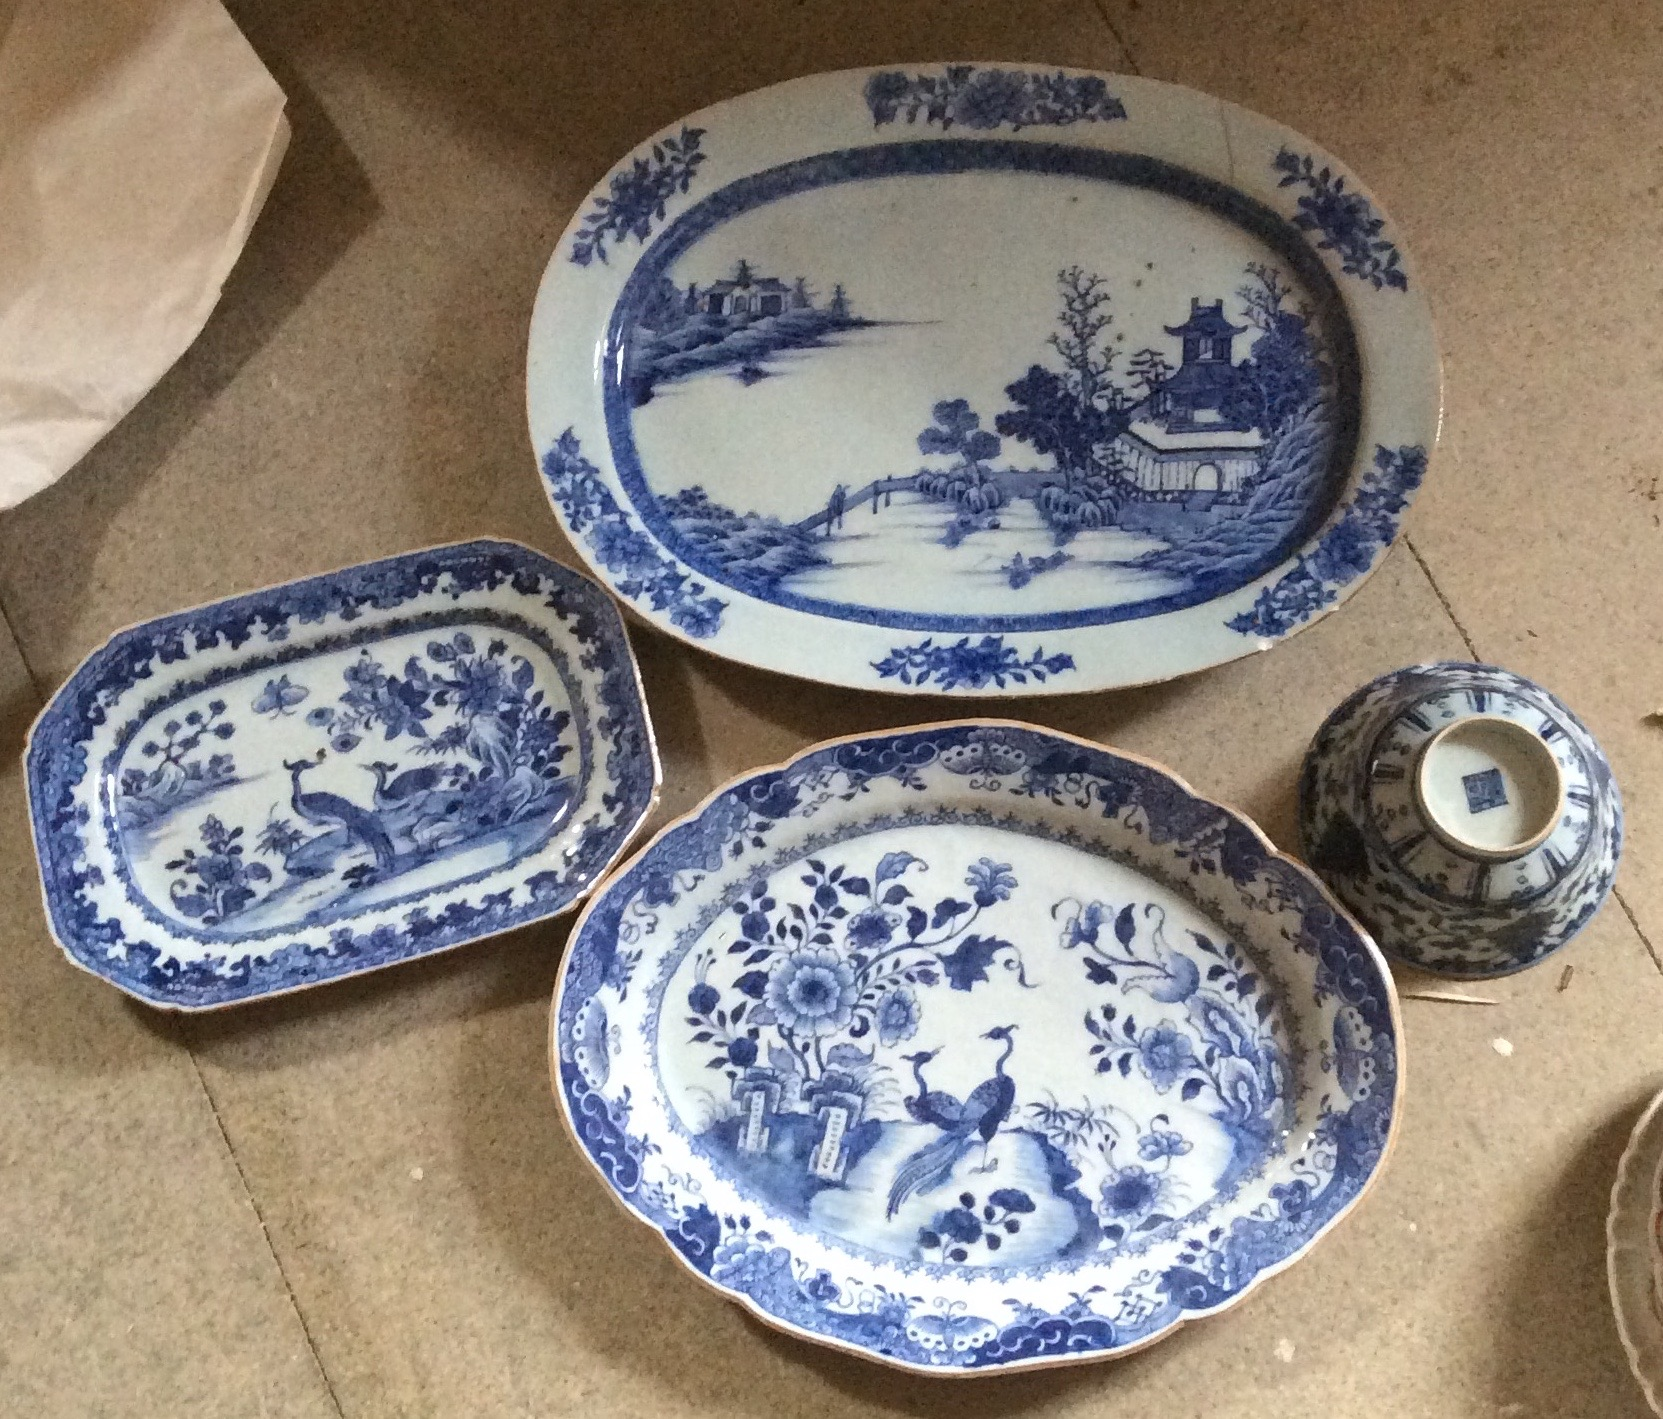 Lot 41 - Four pieces Chinese blue and white porcelain 2 a/f